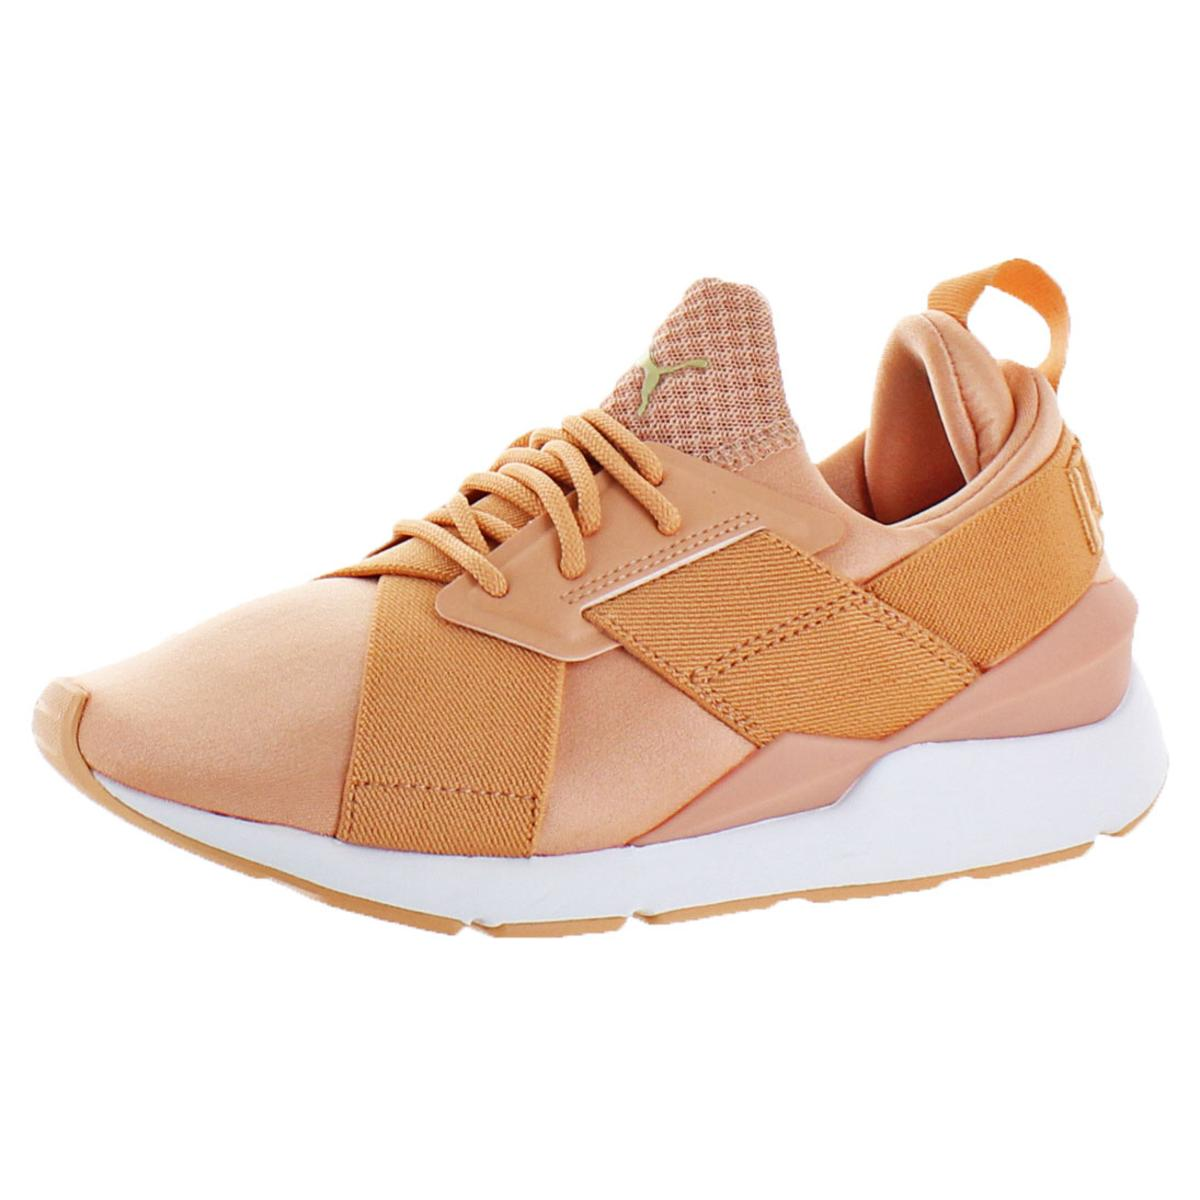 Details about Puma Muse Satin EP Women s Textile Mid-Top Ballet Inspired  Fashion Sneaker dc2492f40